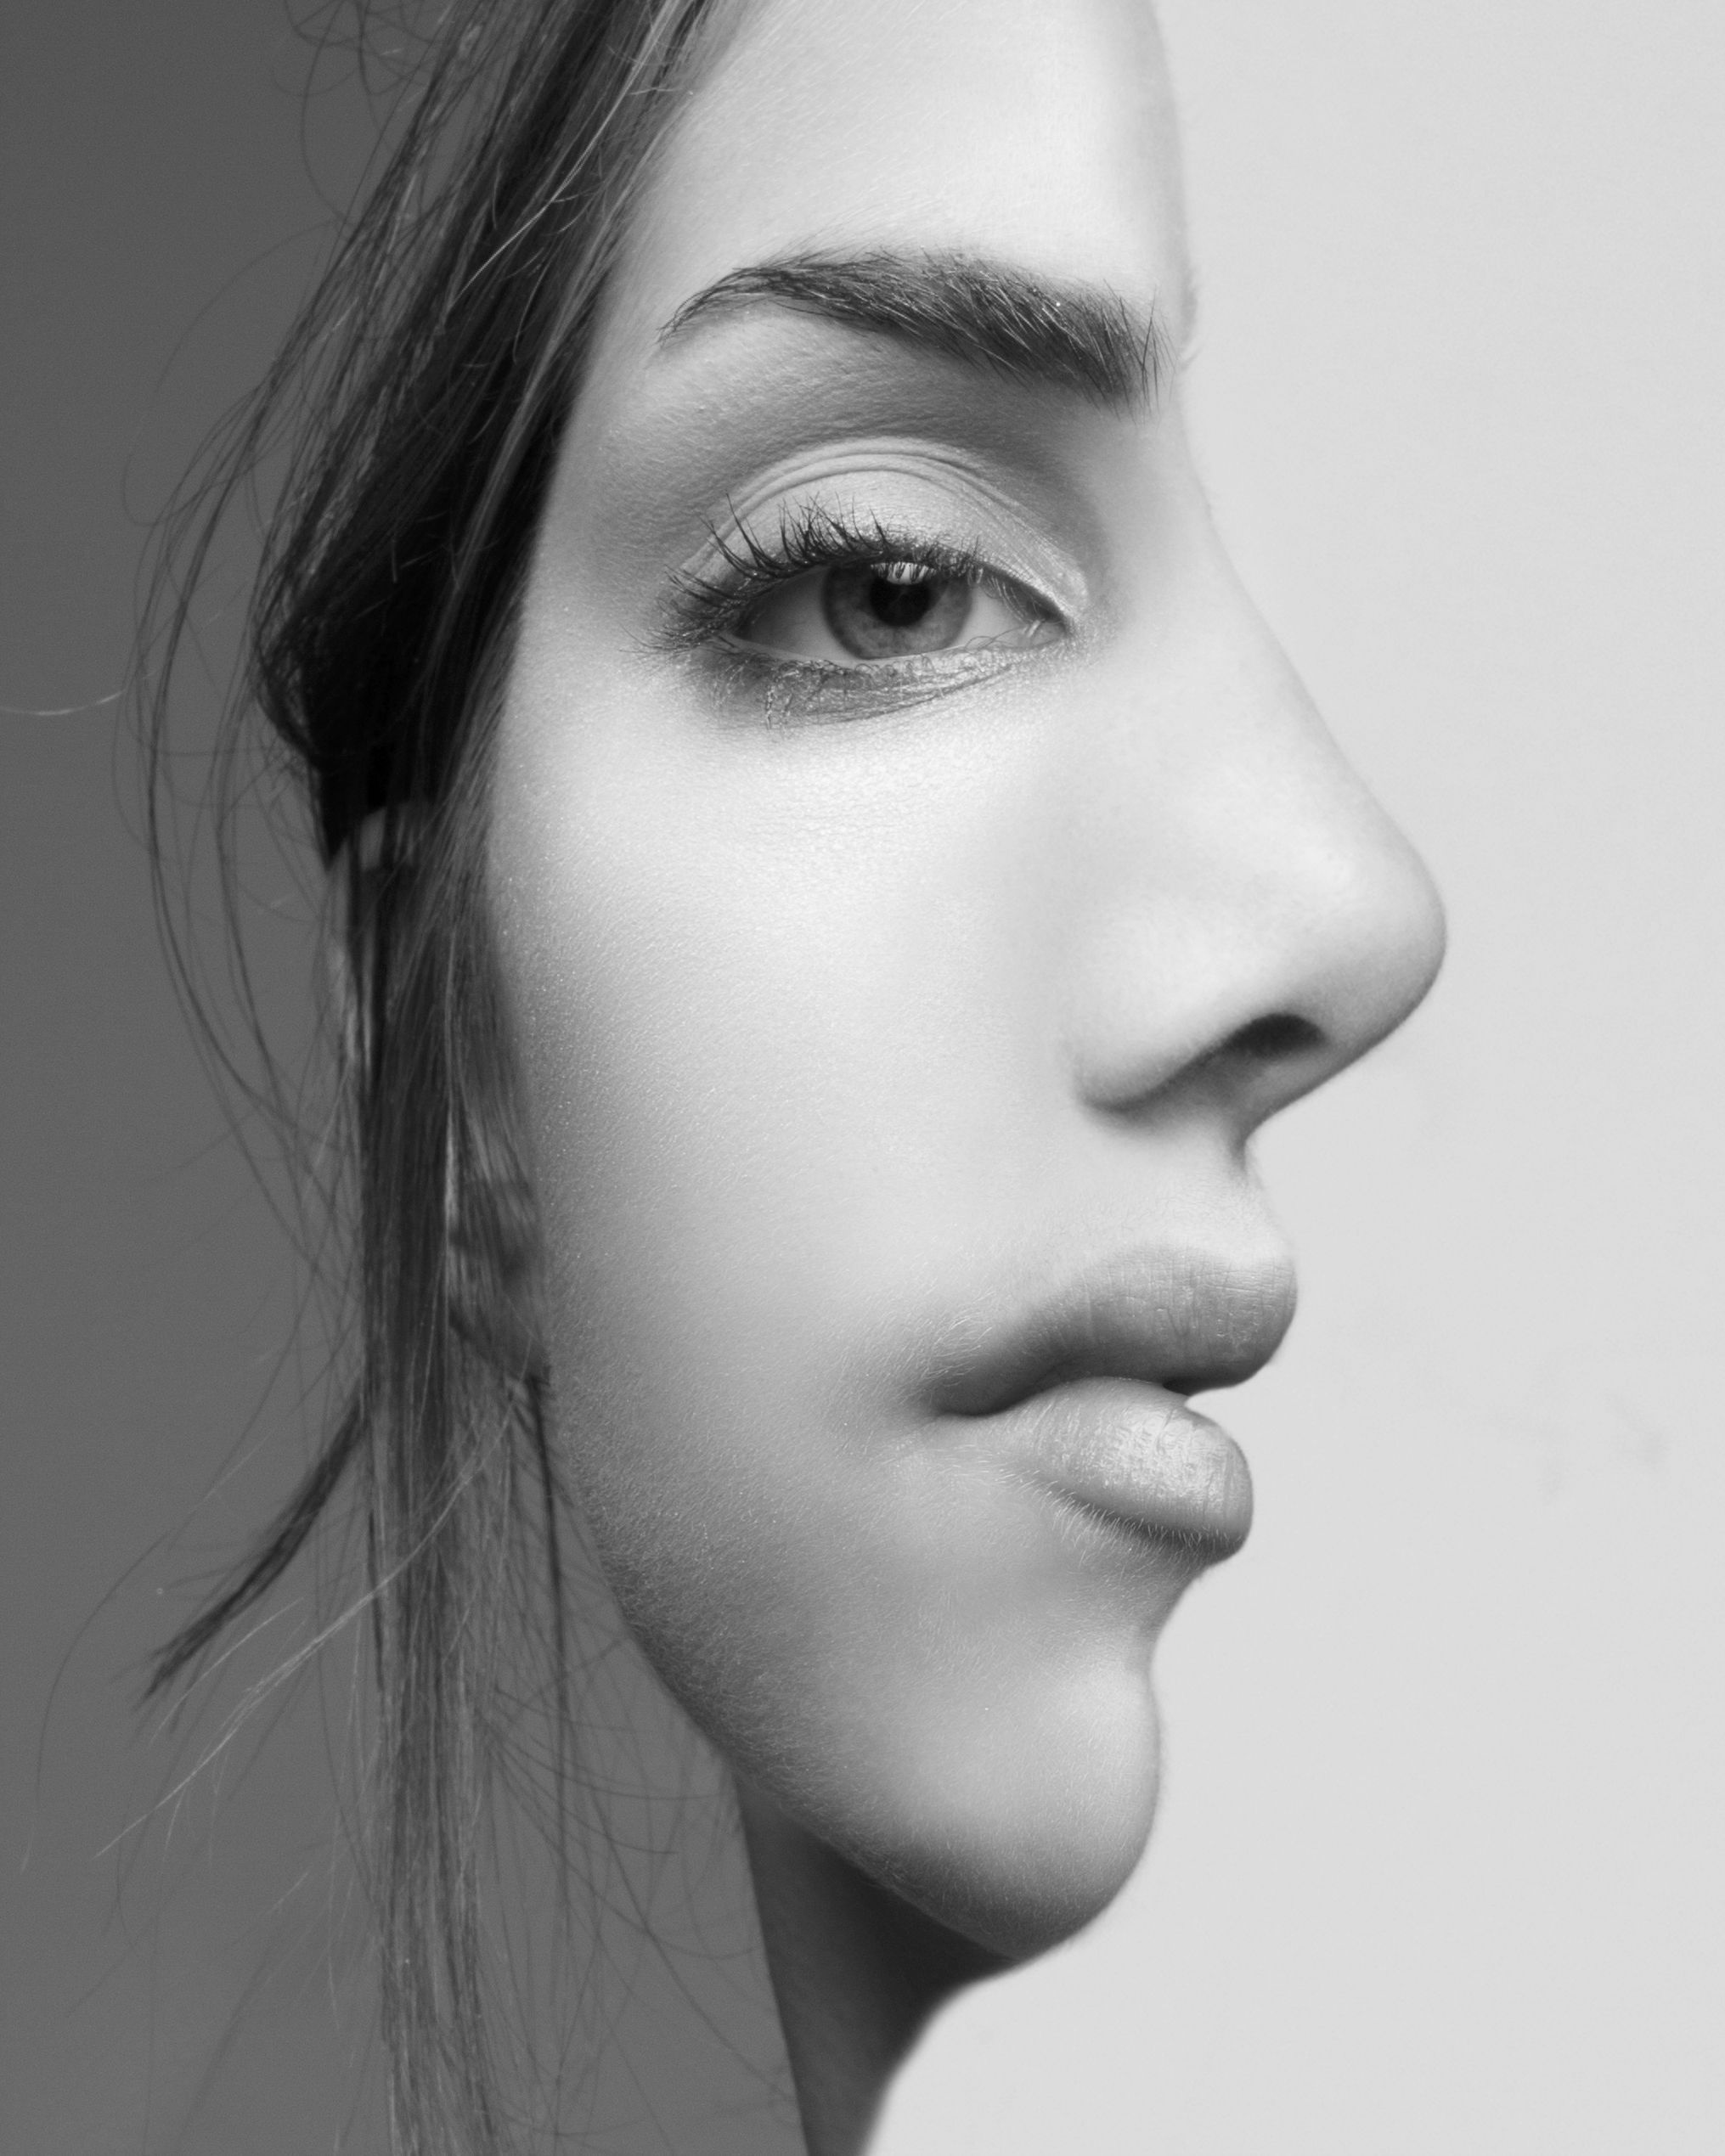 Image Result For Black And White Half Face Portrait Photography Ideas